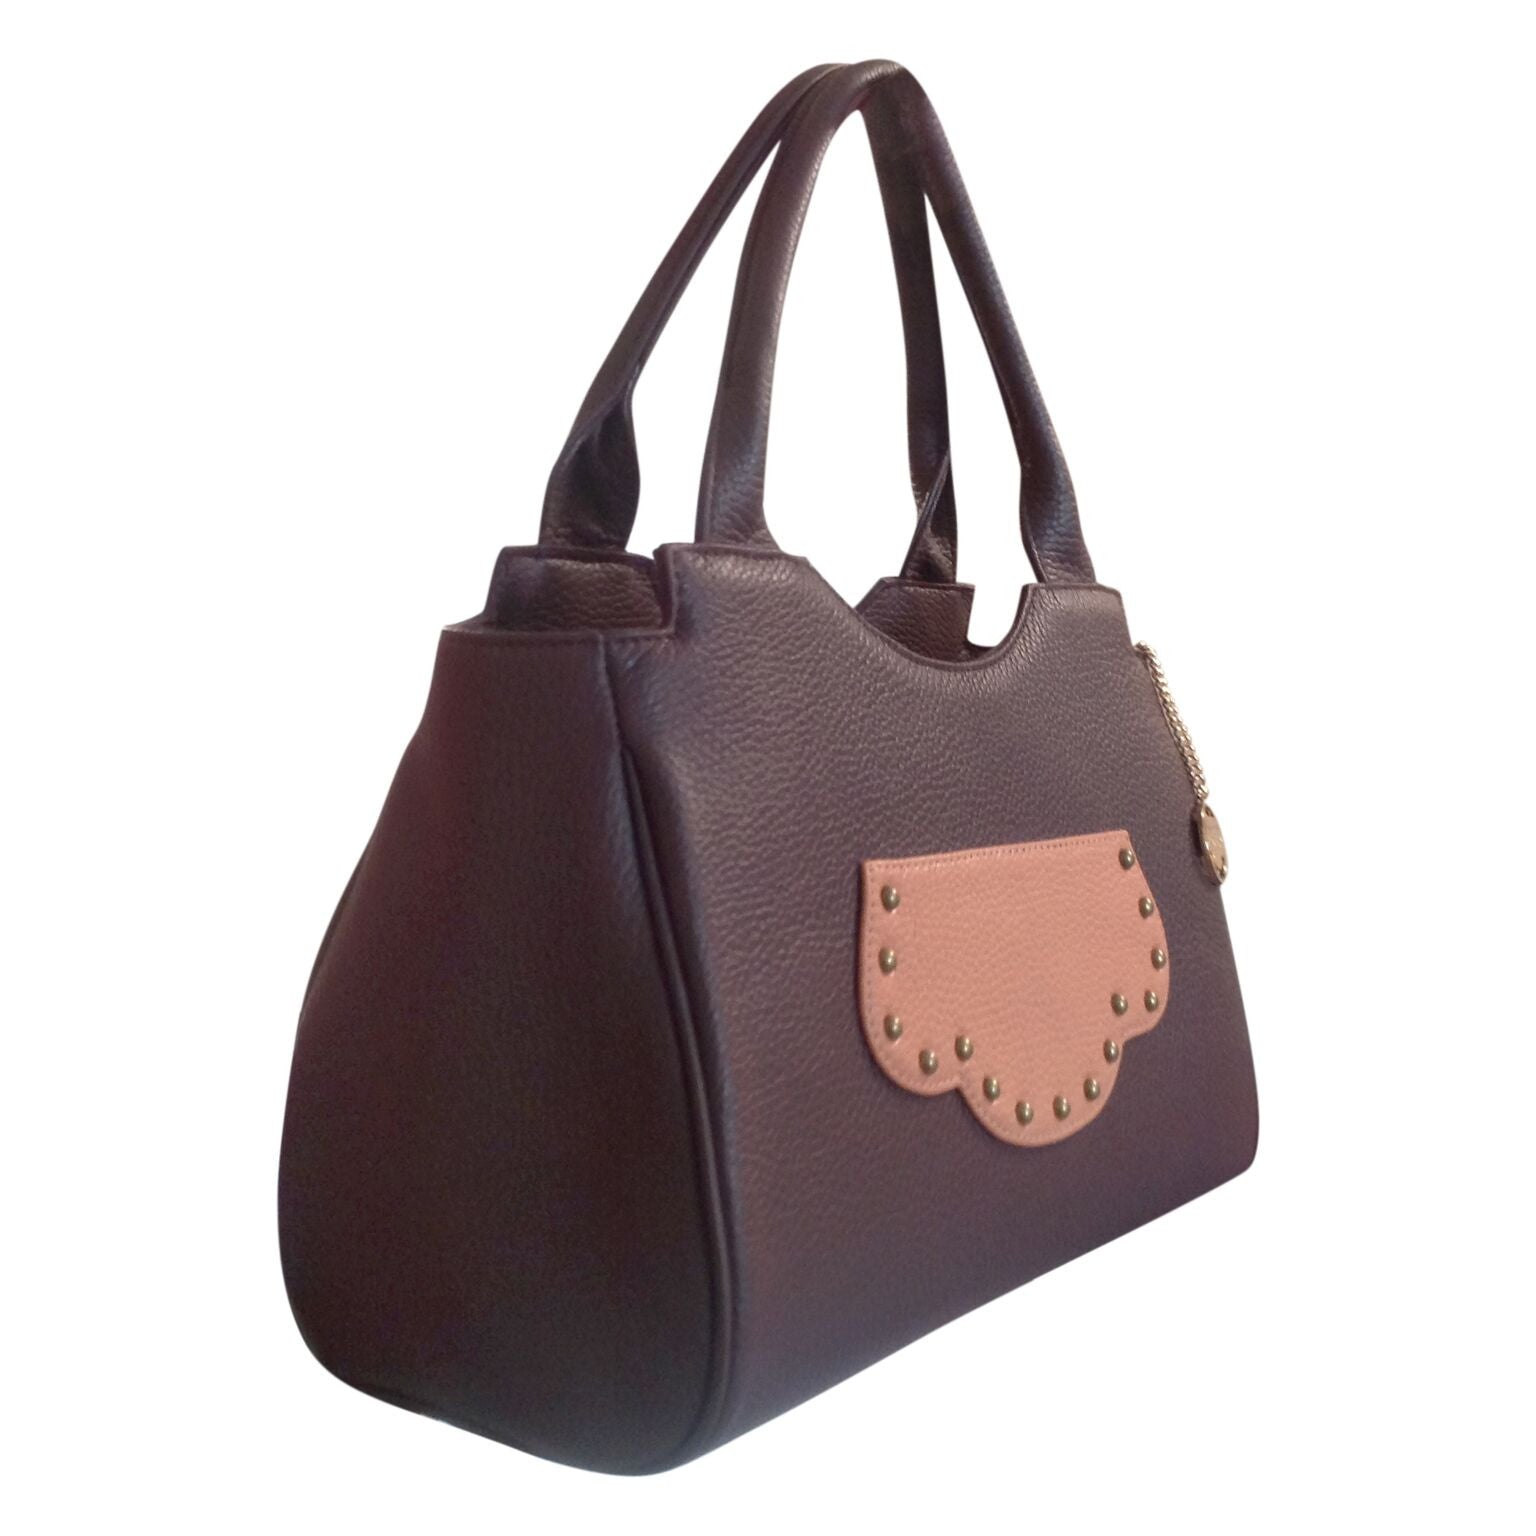 DBR Brown leather handbag